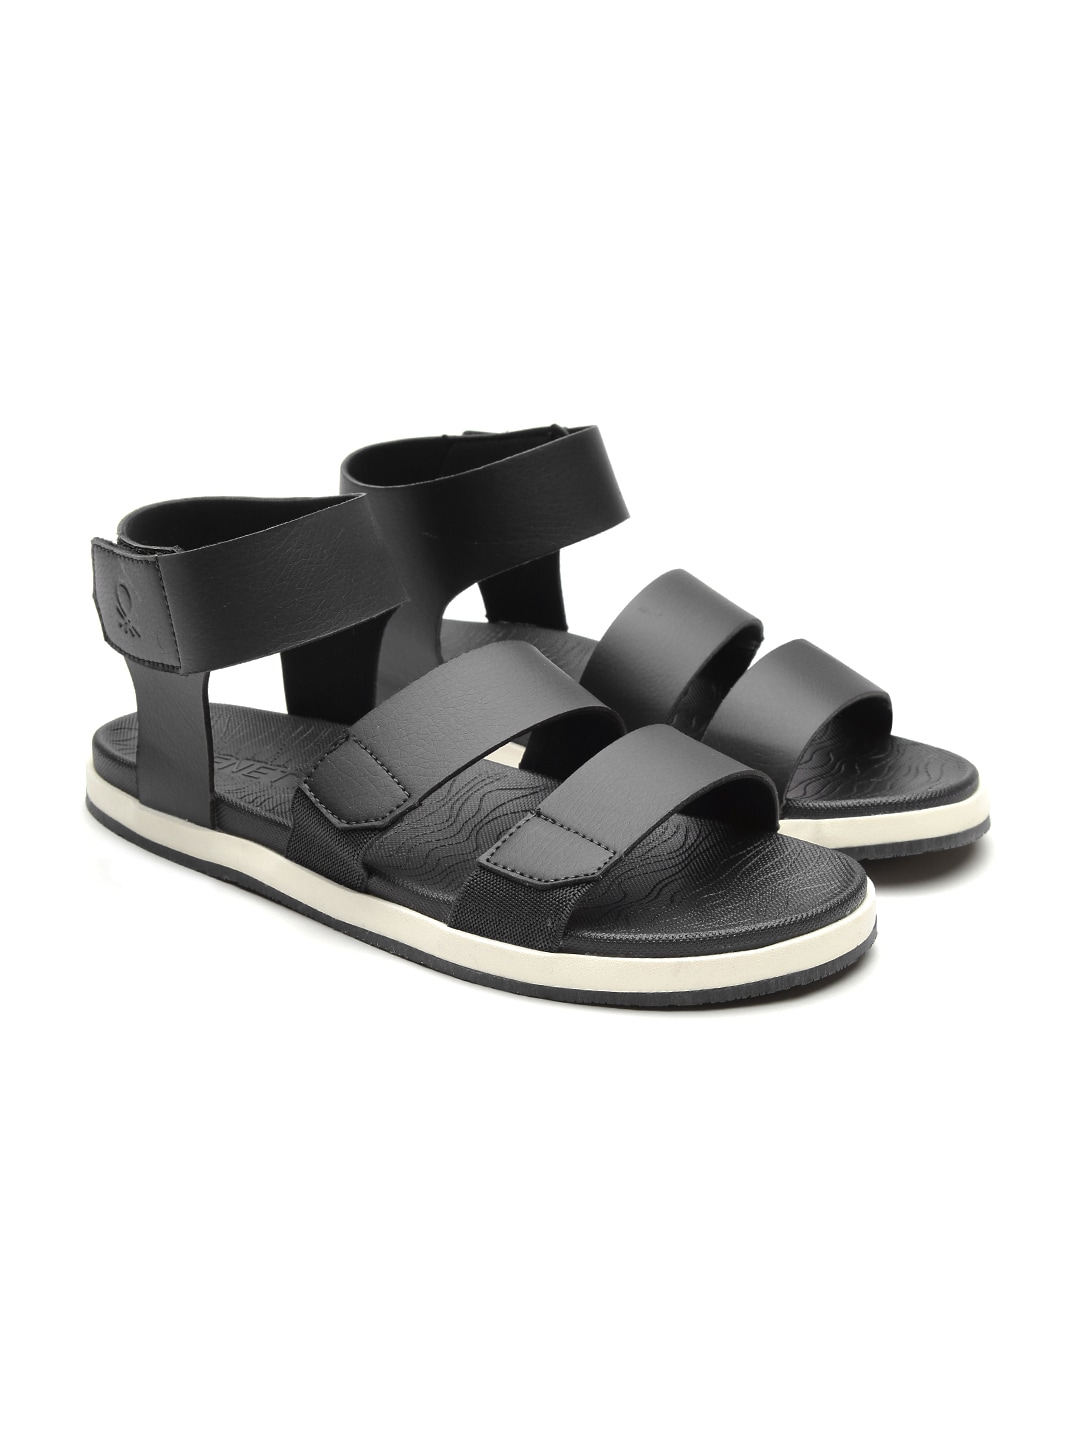 88f152b369434 Ucb Sale Sandals - Buy Ucb Sale Sandals online in India